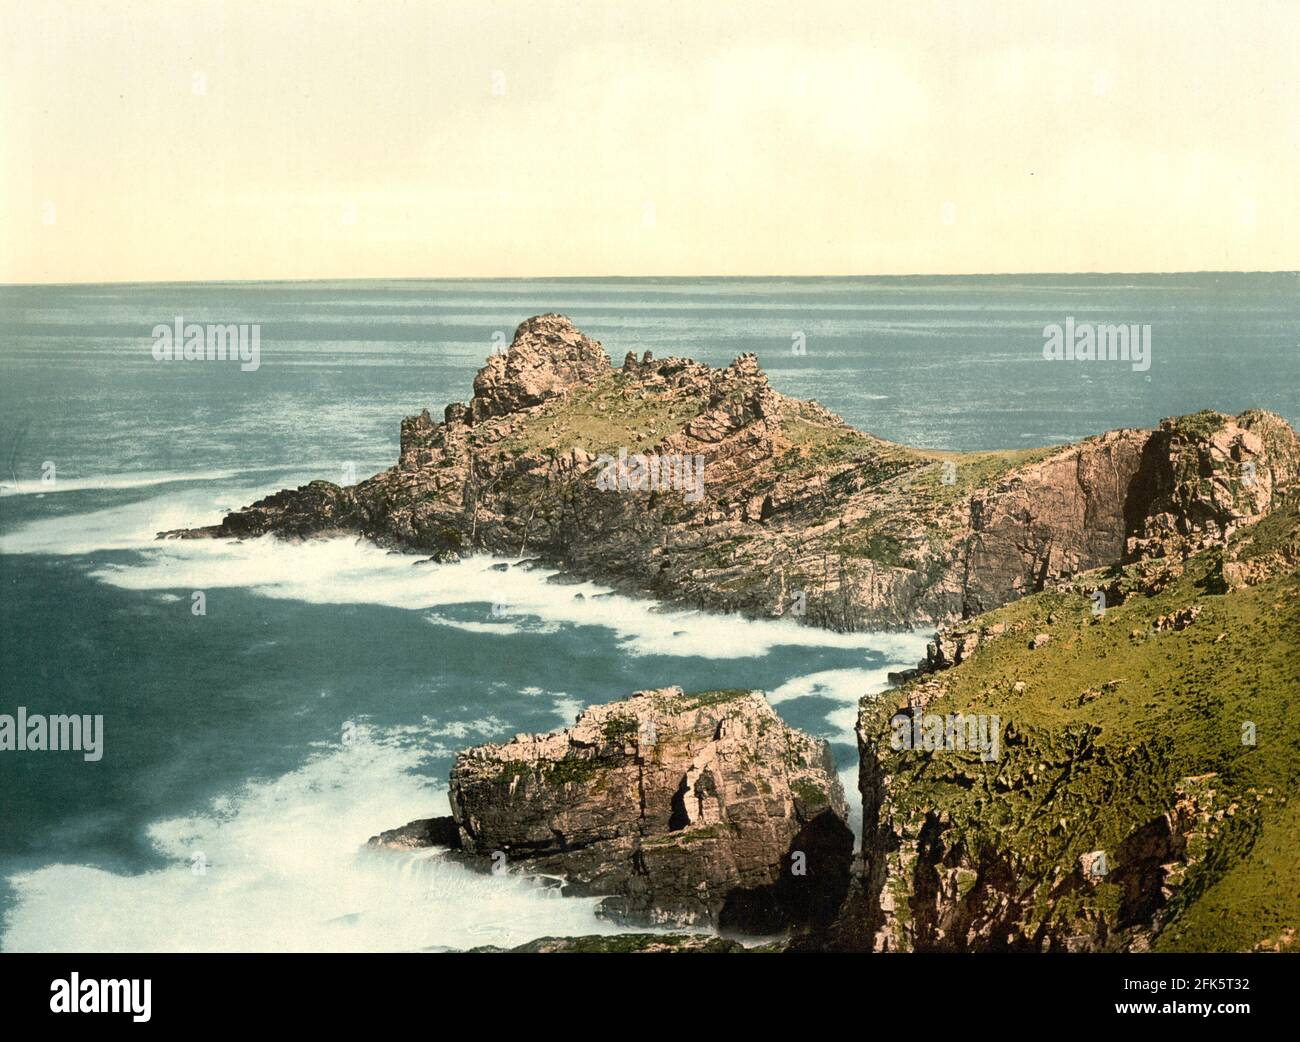 Gurnard's Head, St Ives, Cornwall vers 1890-1900 Banque D'Images